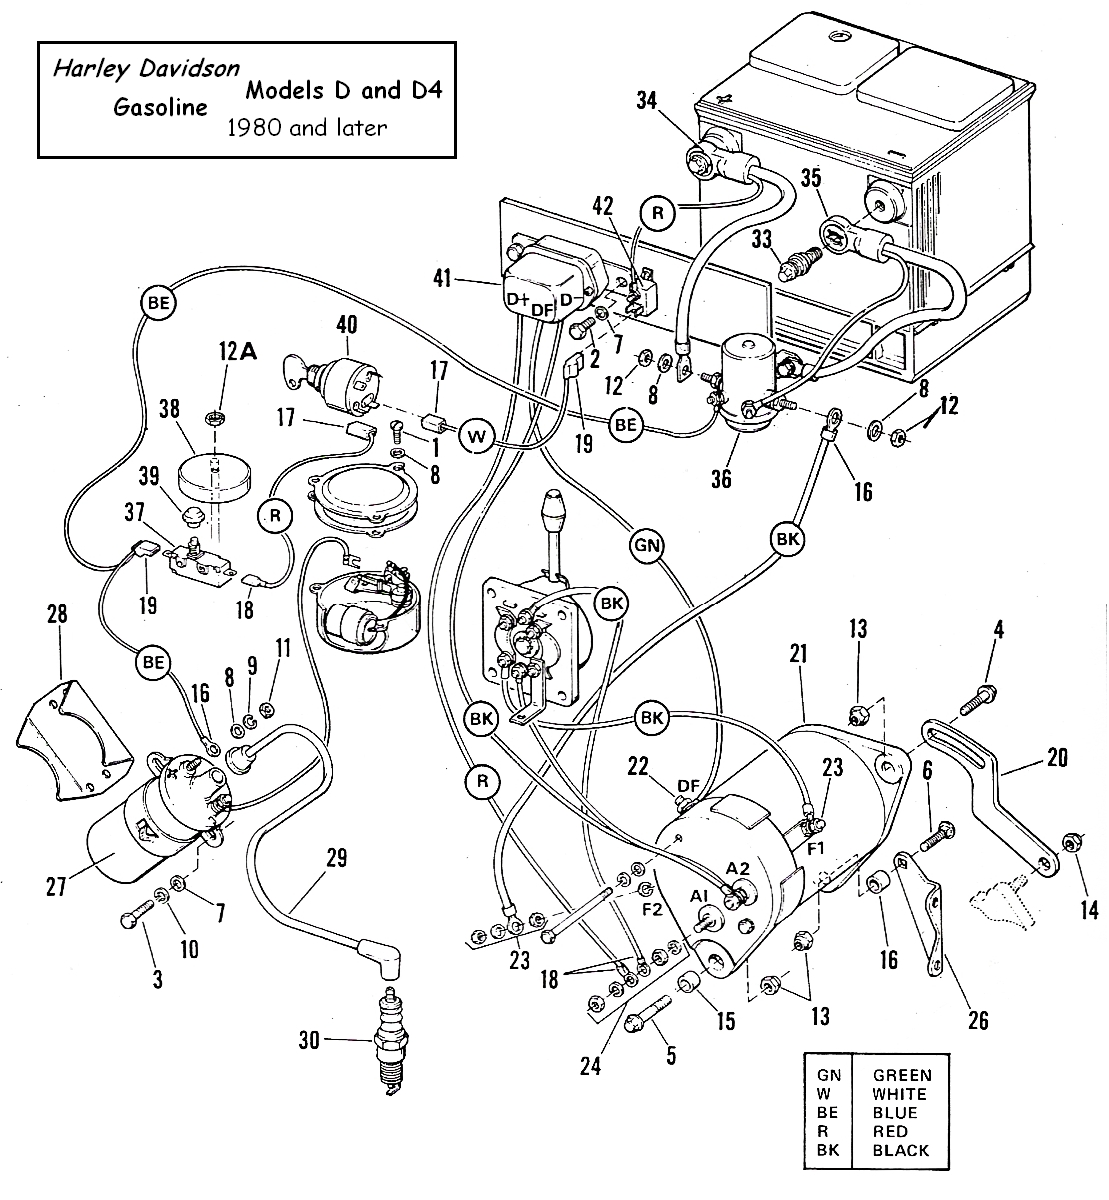 HG 101 vintagegolfcartparts com 1984 par car golf cart wiring diagram at readyjetset.co